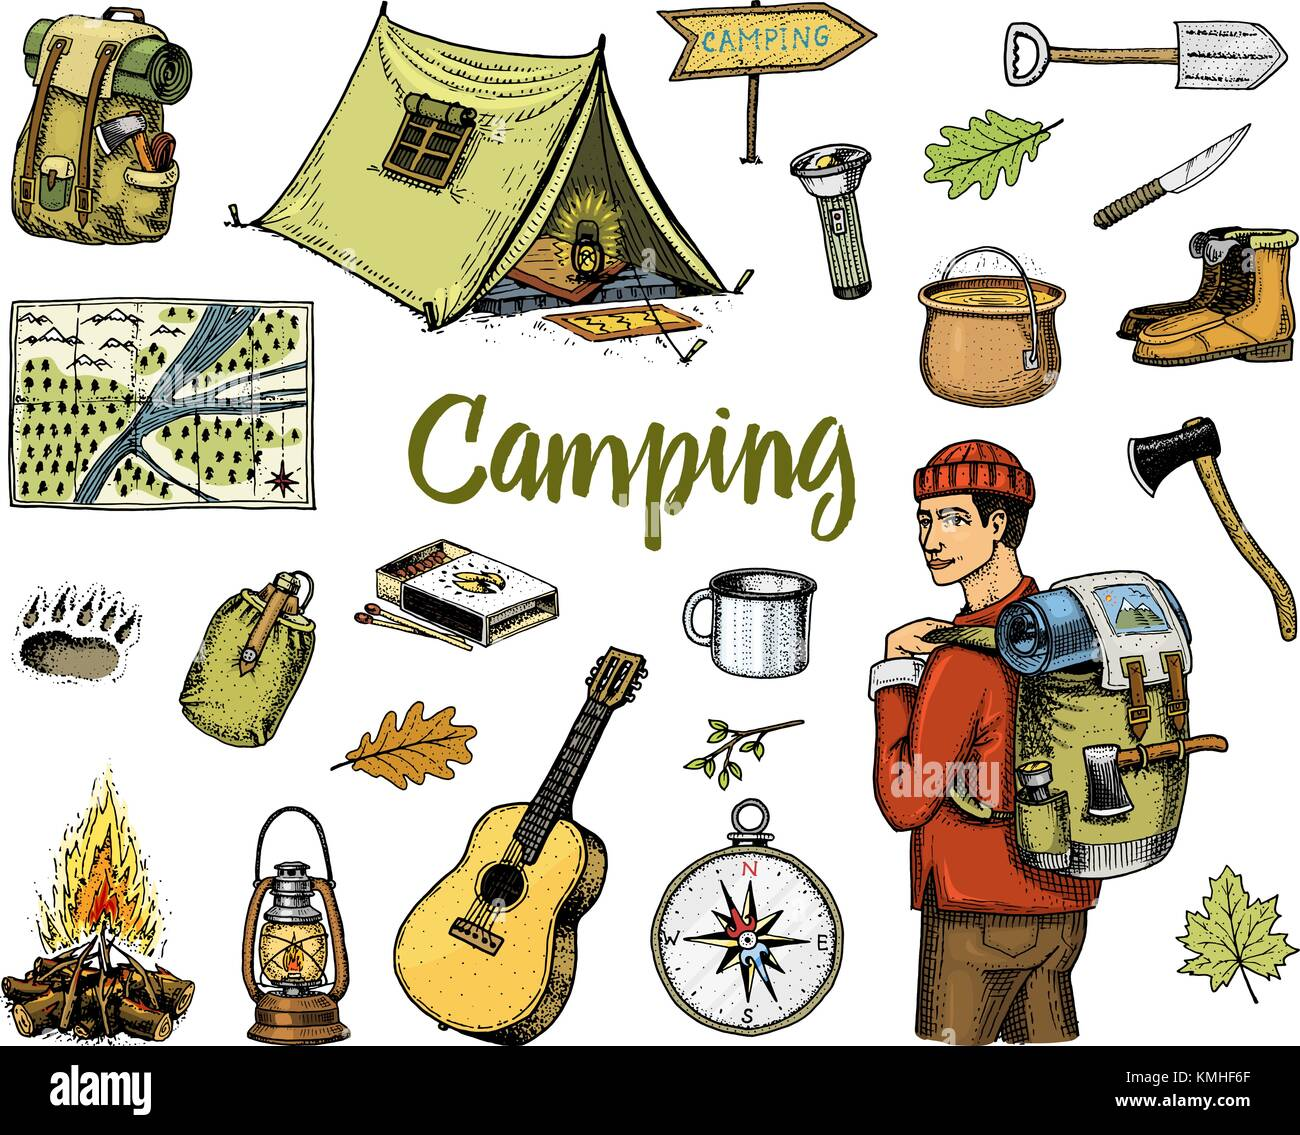 Camping Equipment Set Outdoor Adventure Hiking Traveling Man With Luggage Tourism Trip Engraved Hand Drawn In Old Sketch Vintage Style Guitar And